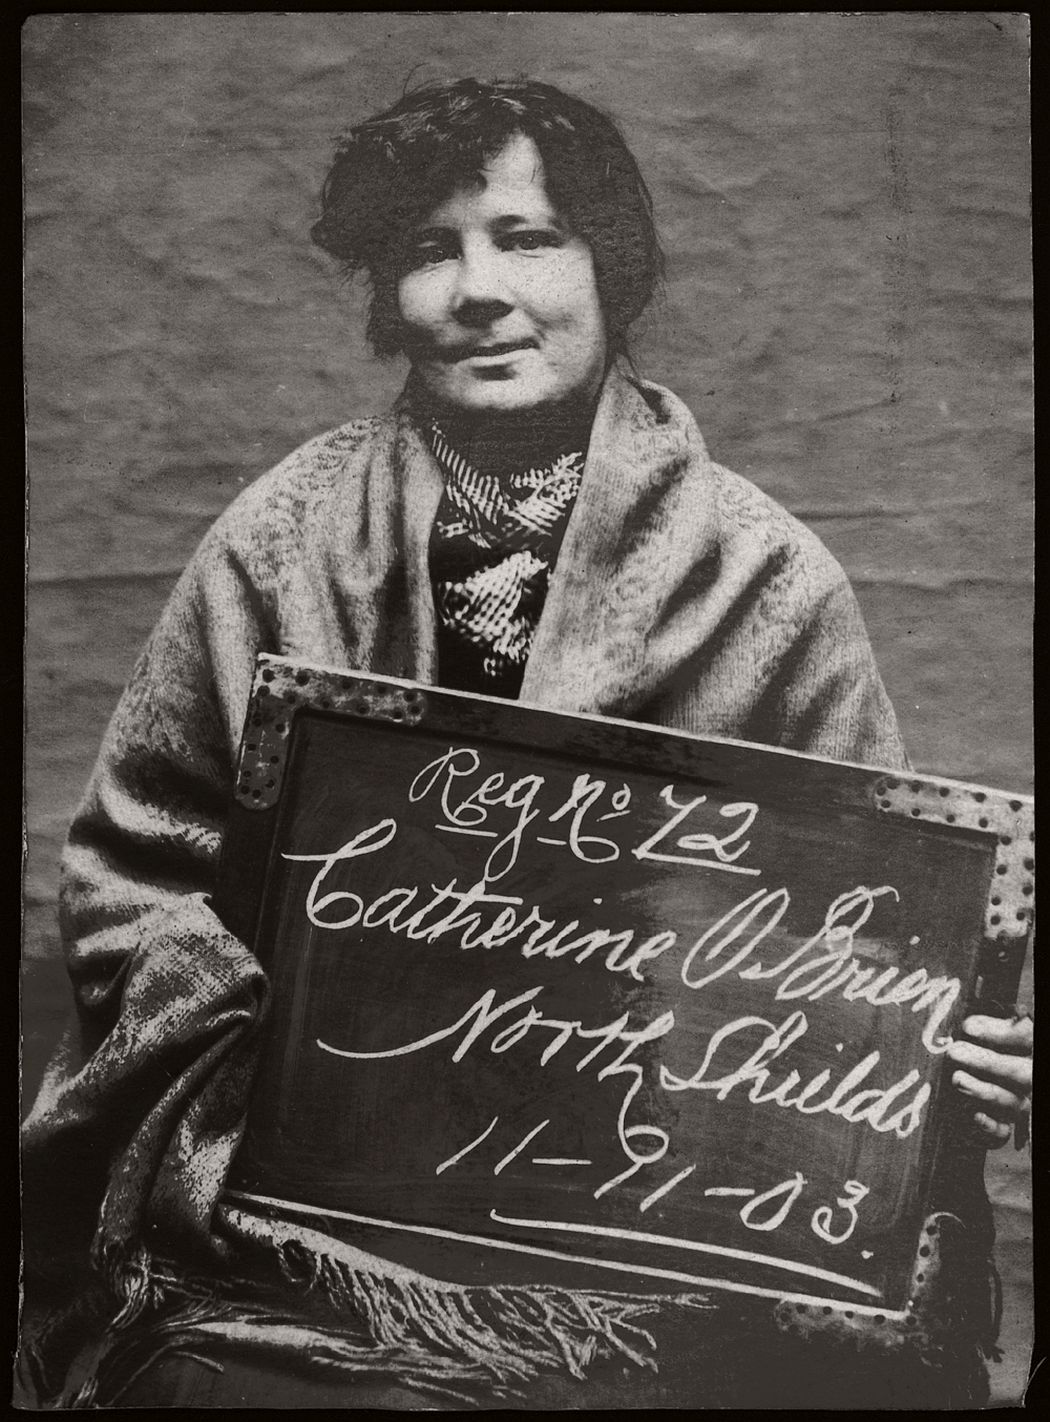 vintage-mug-shot-of-women-criminals-from-north-shields-1903-1905-07